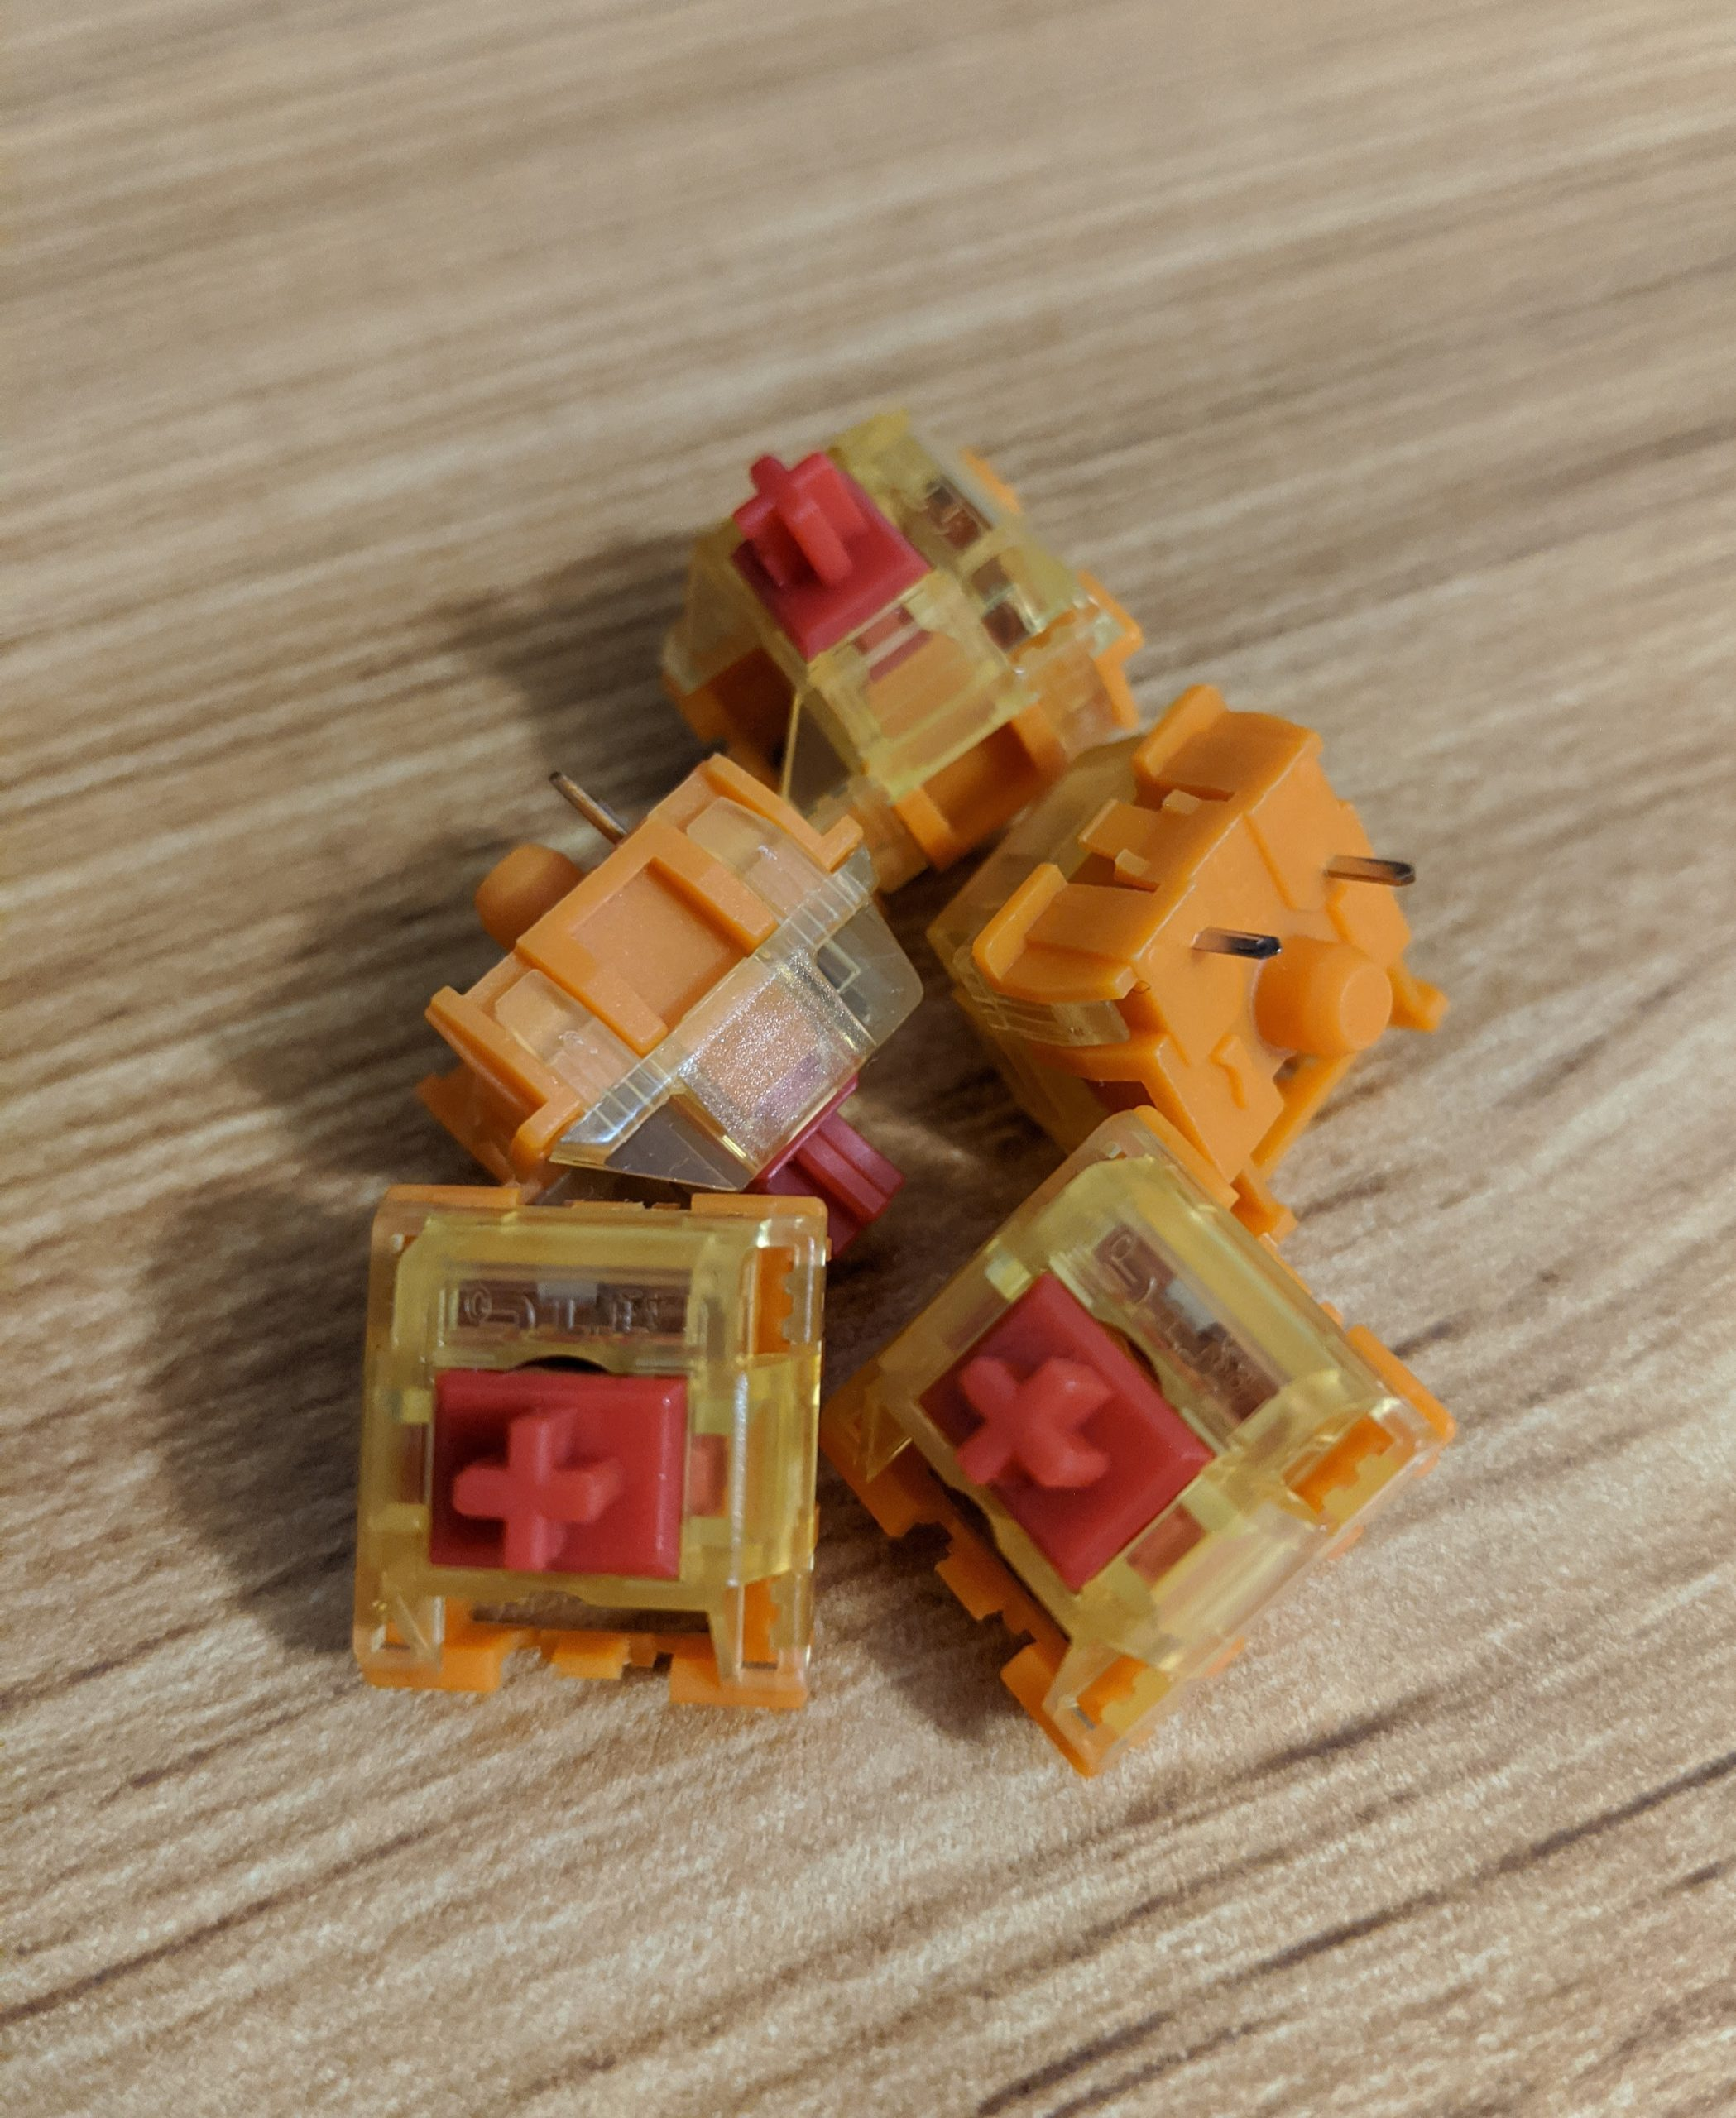 TTC Gold V2 Red switches